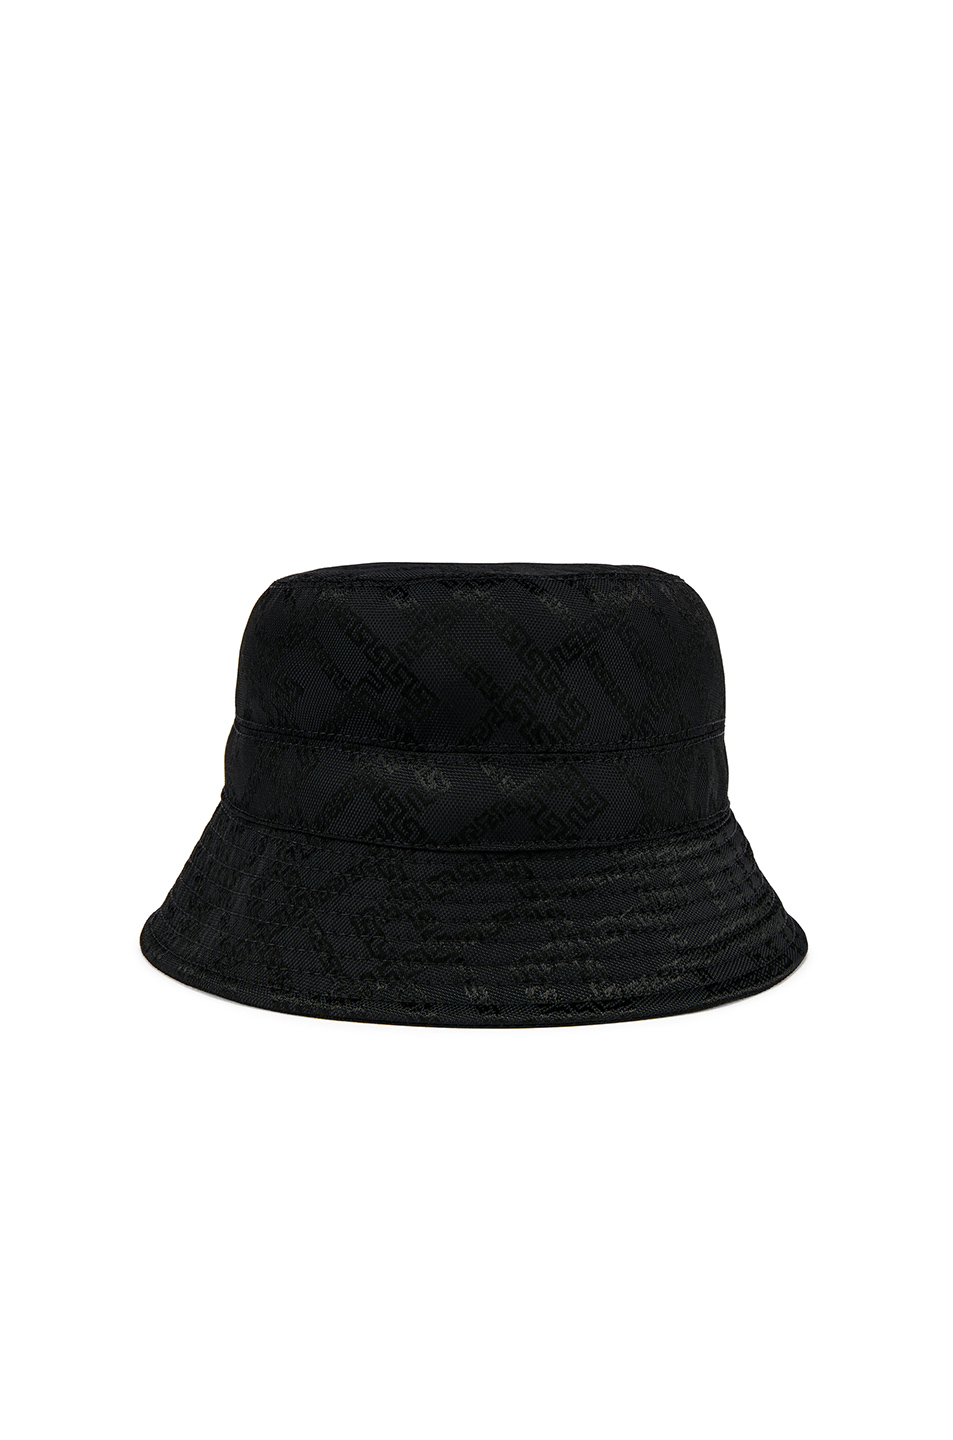 a79ce48e5033f Buy Original VERSACE Bucket Hat at Indonesia